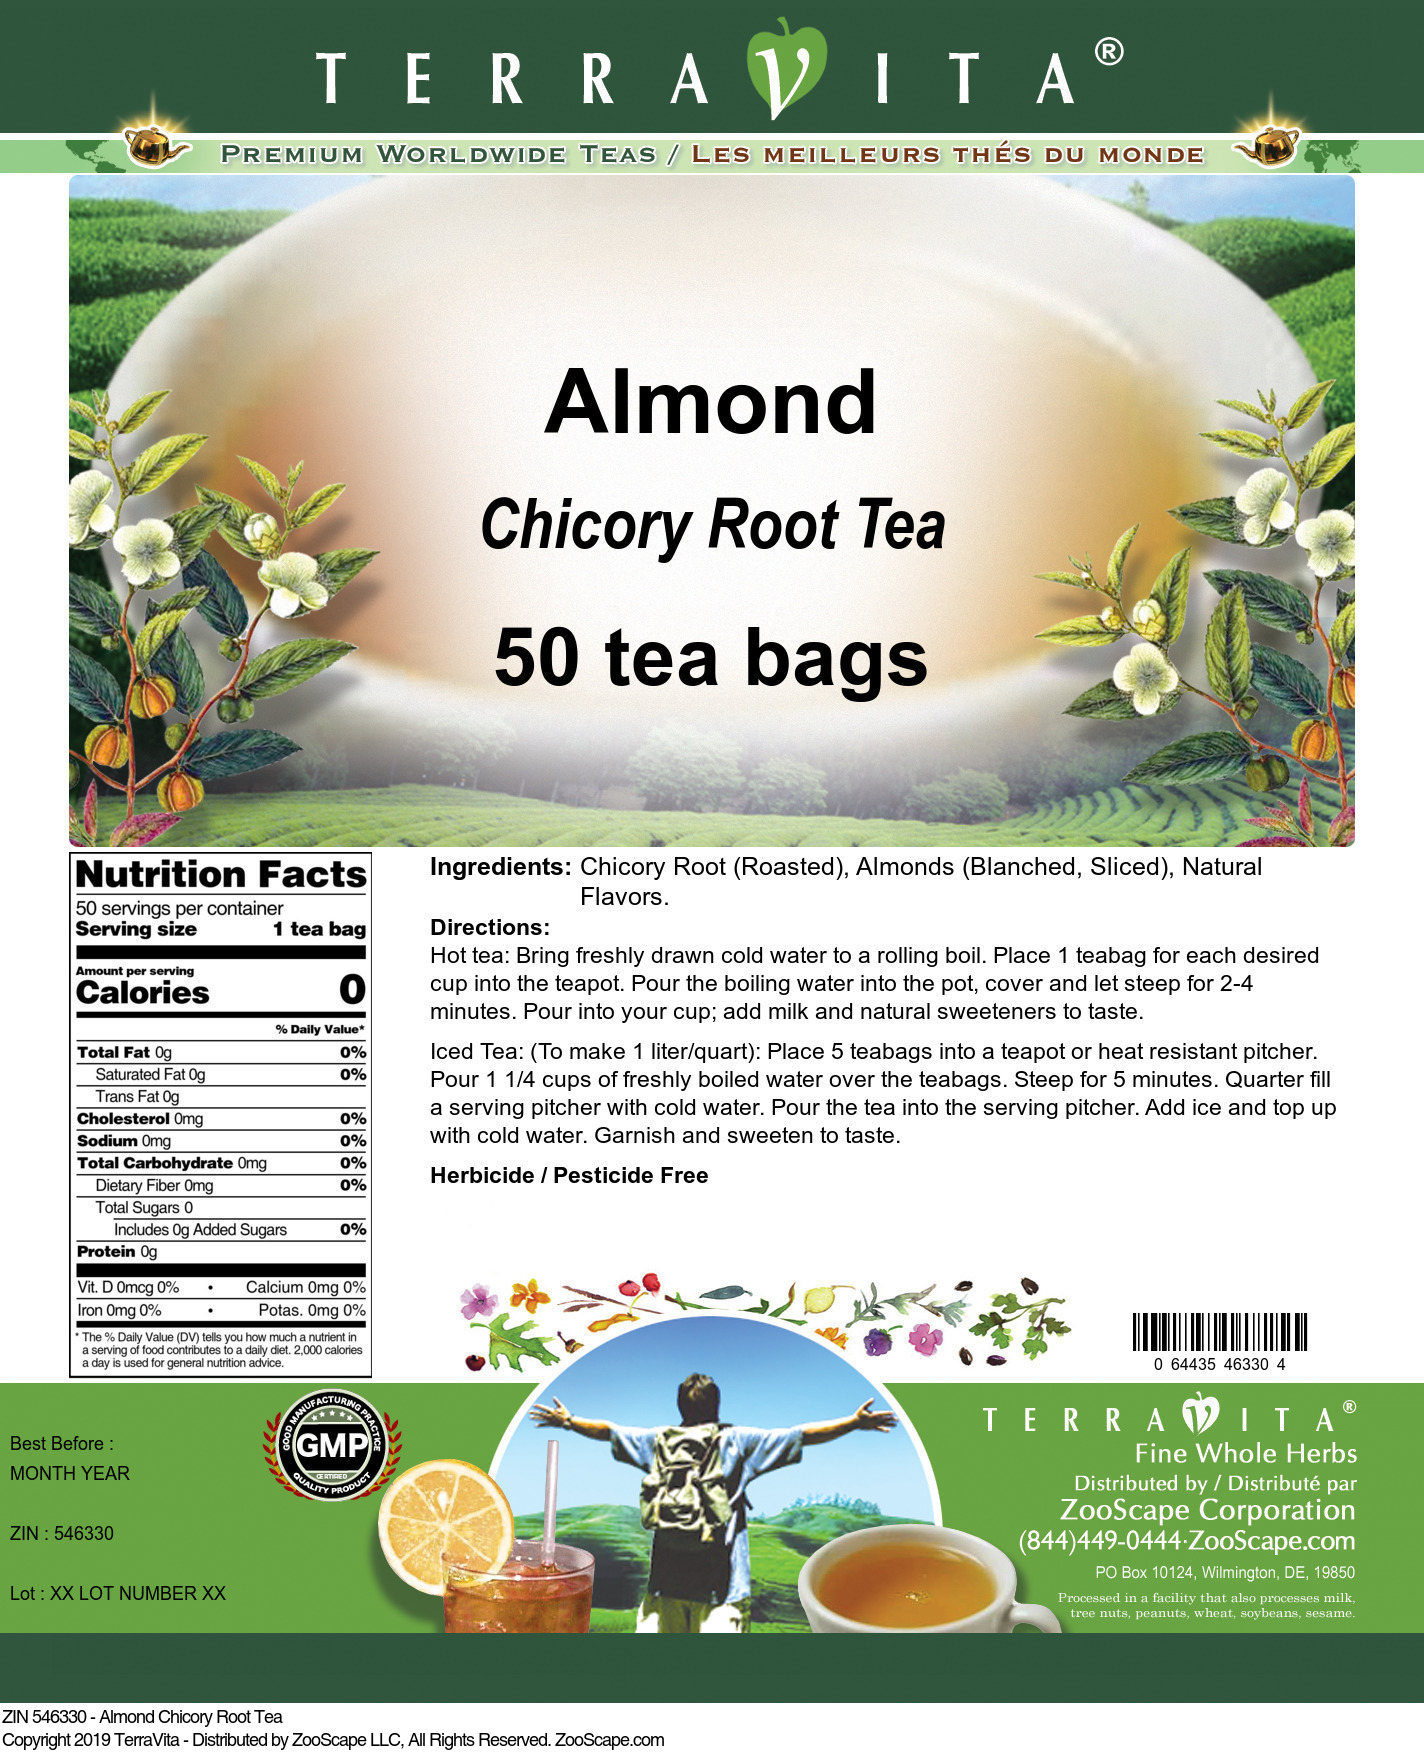 Almond Chicory Root